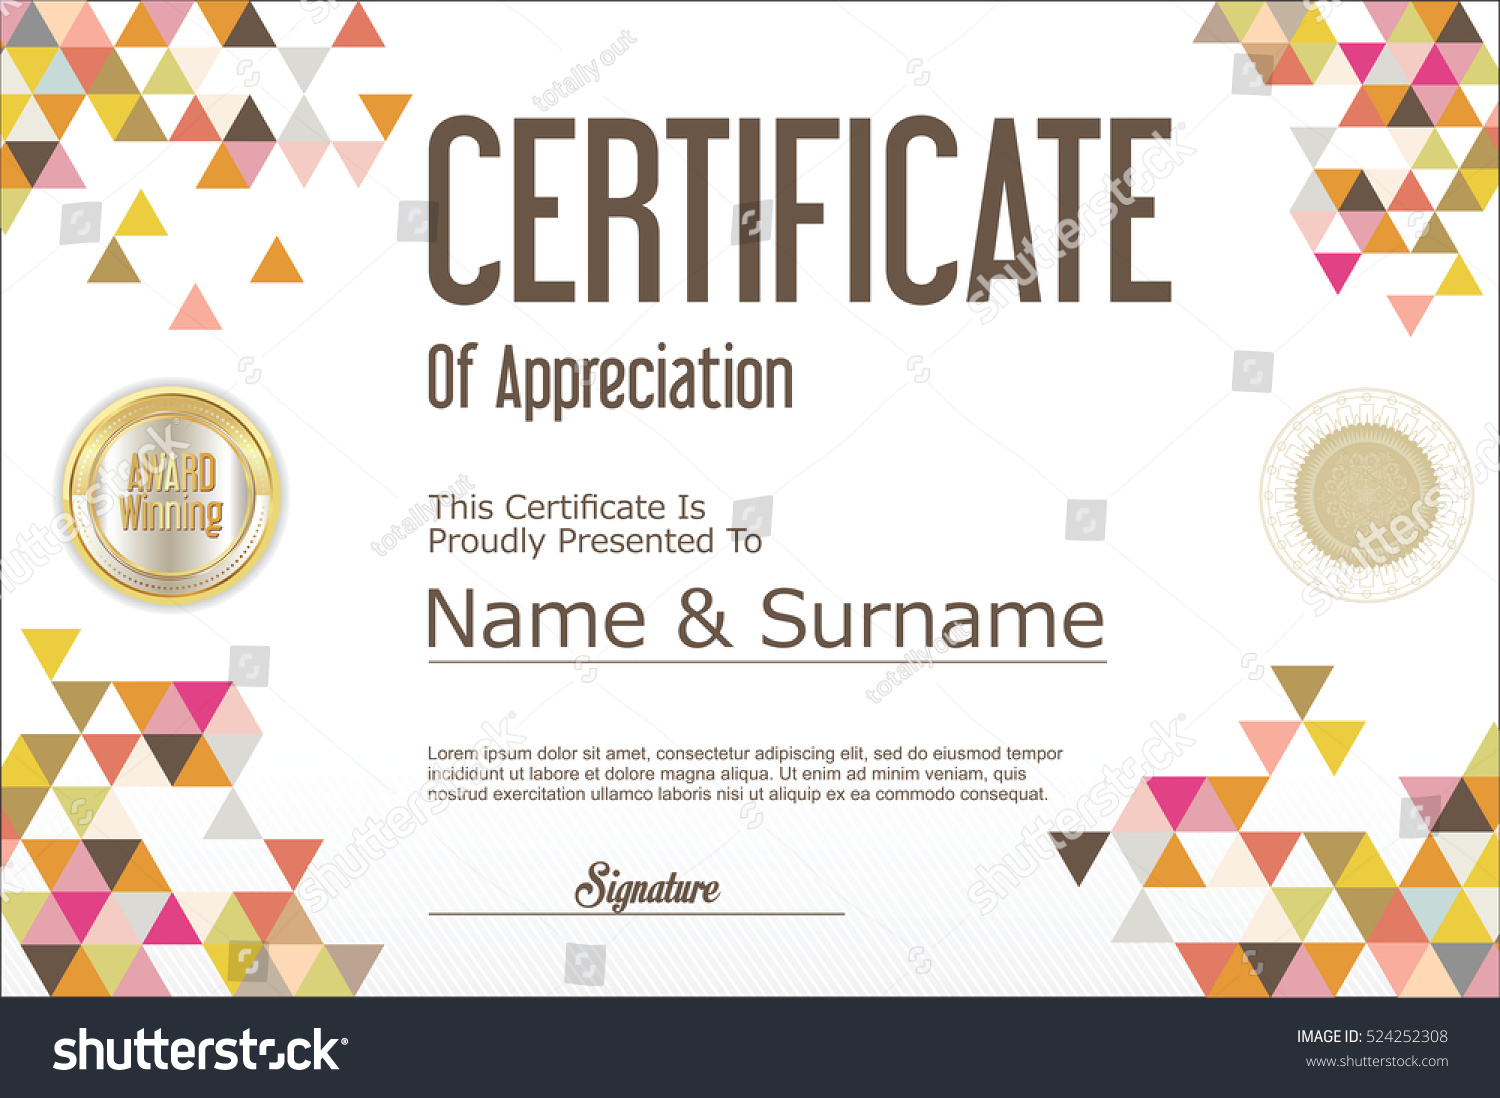 Excellence Certificate Templates Certificate Employee Of The Month